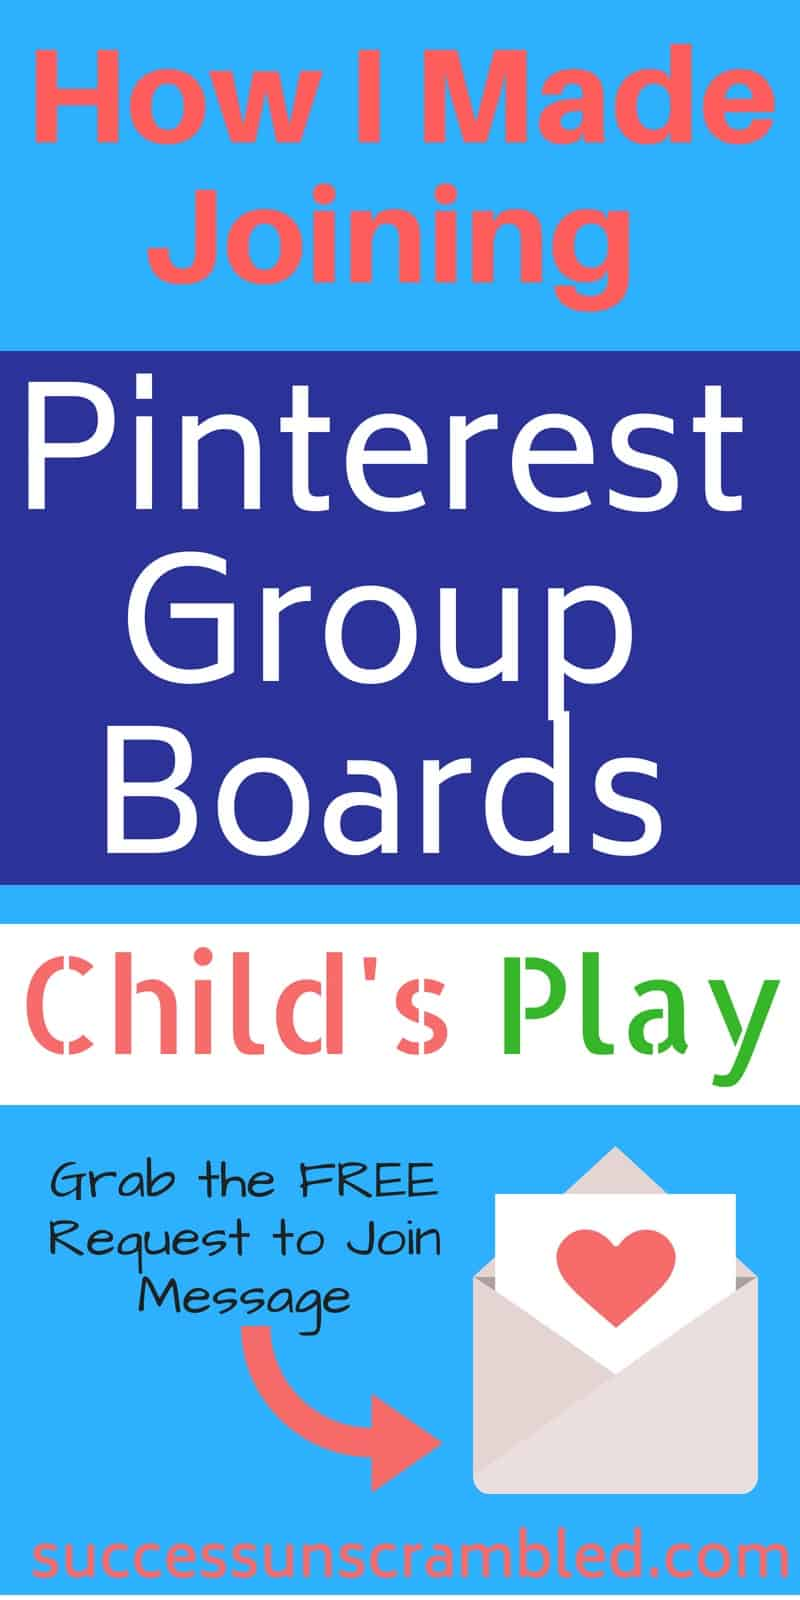 How I Made Joining Pinterest Group Boards Child's Play